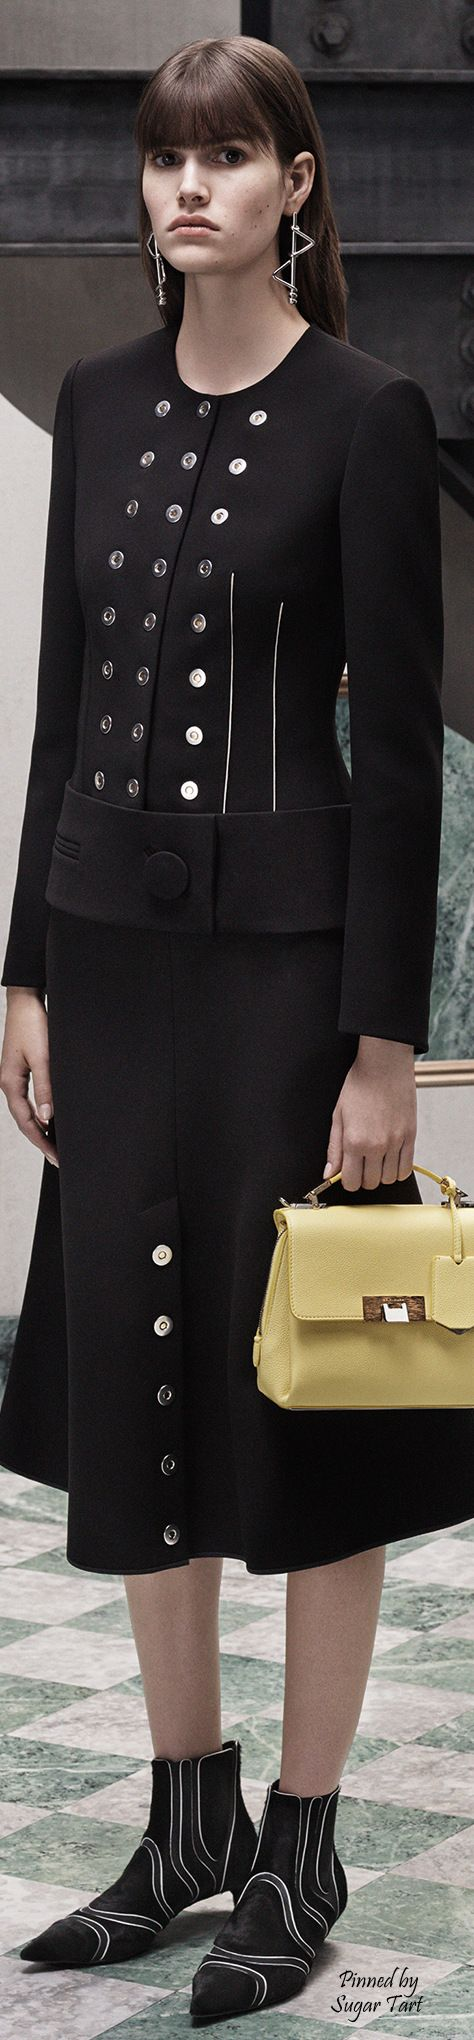 Balenciaga - Pre-Fall 2015  THIS DESIGNER SHOULD BE EMBARRASSED!  SHE LOOKS BORING, BLAND, AND  SOMEWHAT LIKE A CLOWN....CHECK THE SHOES!   UGH!